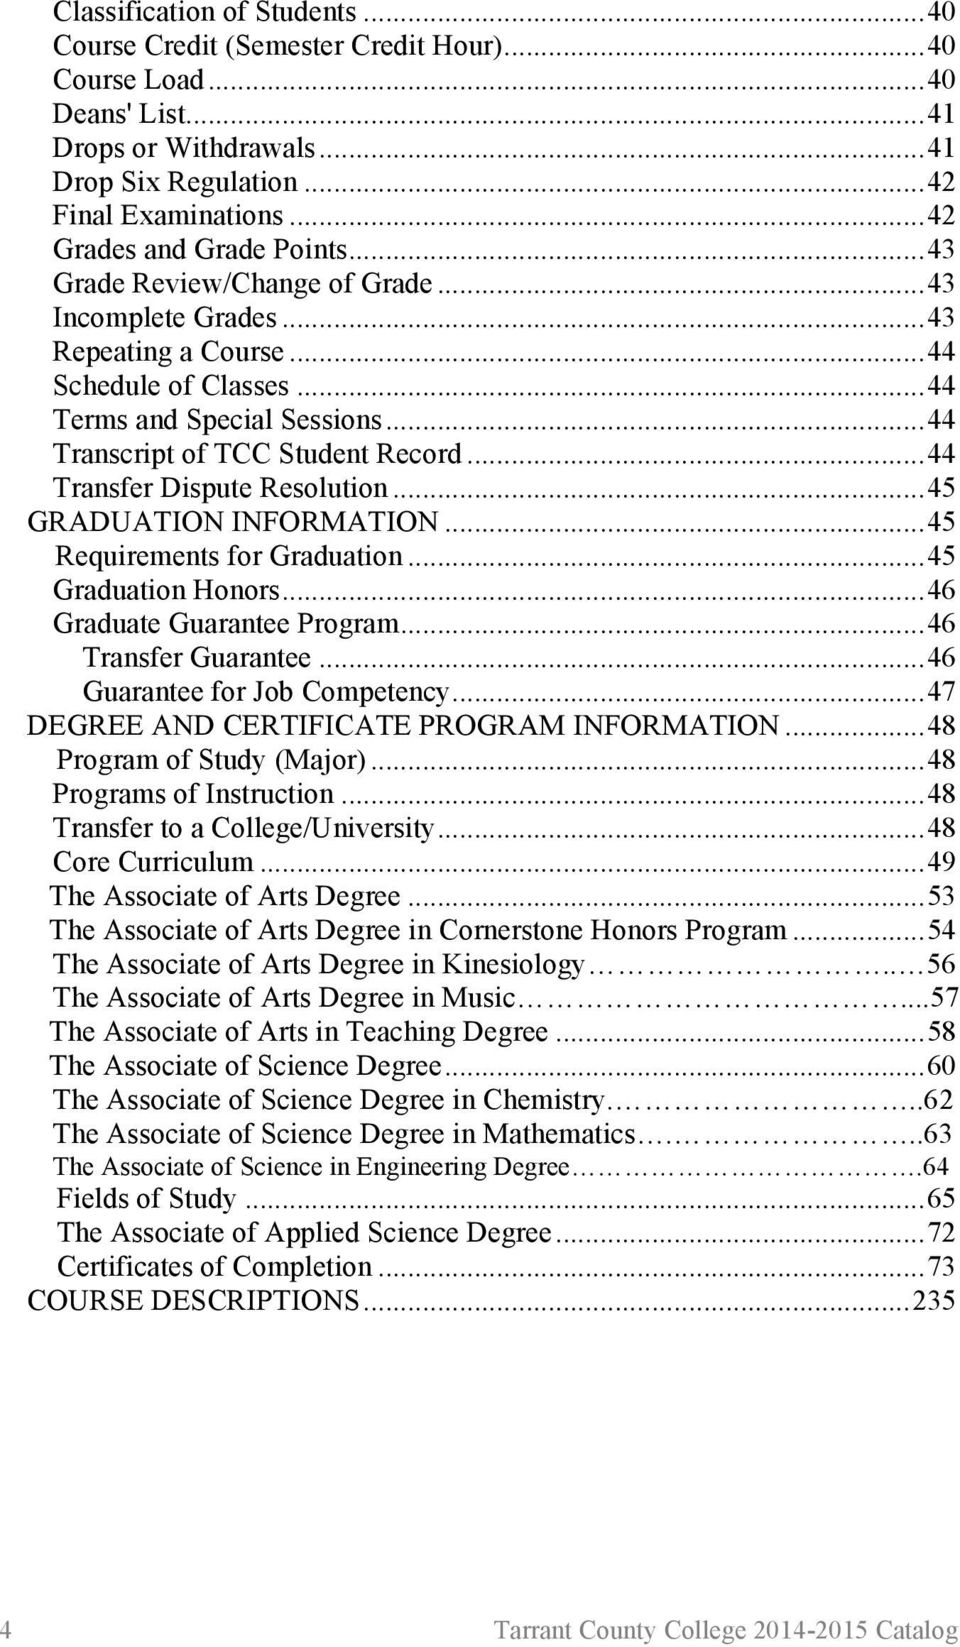 .. 44 Transcript of TCC Student Record... 44 Transfer Dispute Resolution... 45 GRADUATION INFORMATION... 45 Requirements for Graduation... 45 Graduation Honors... 46 Graduate Guarantee Program.